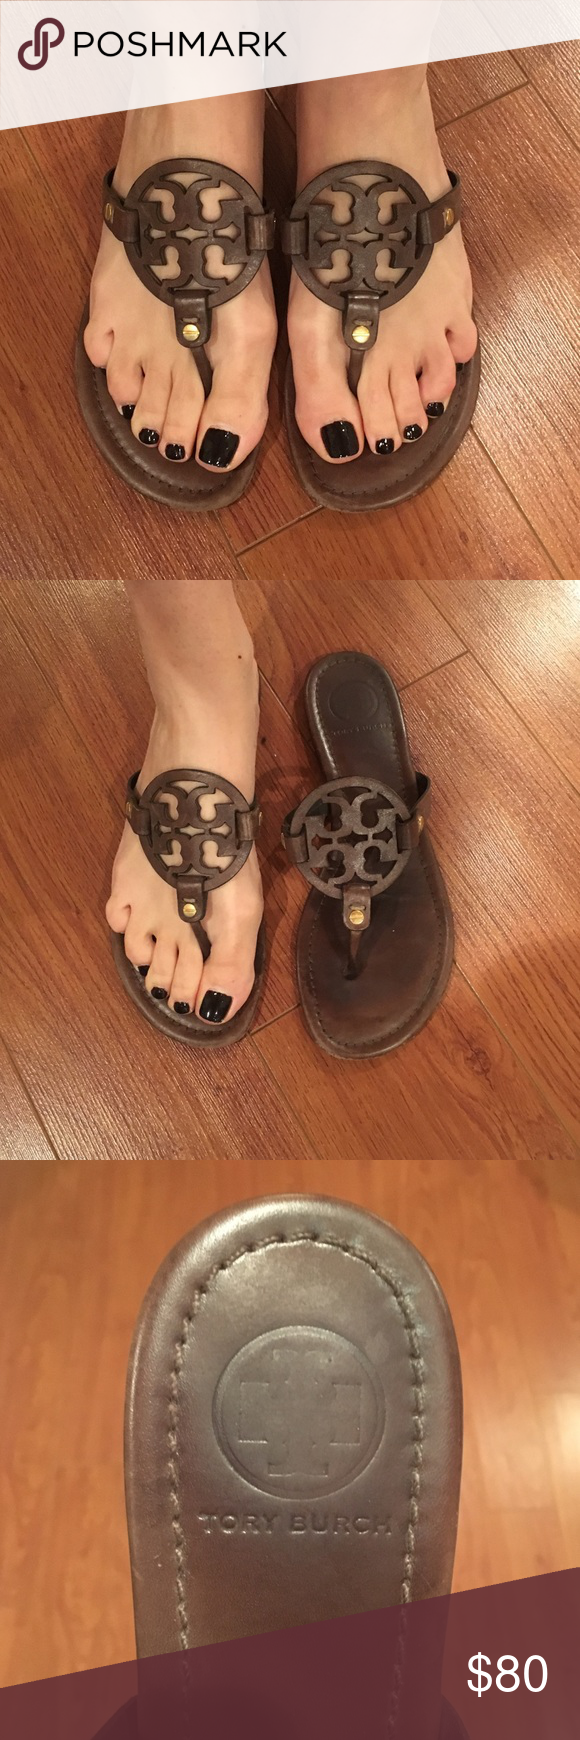 670a2c023 Tory Burch Brown Miller Sandals Size 8 Beautiful stylish chocolate brown  leather sandals. Tory Burch Shoes Sandals